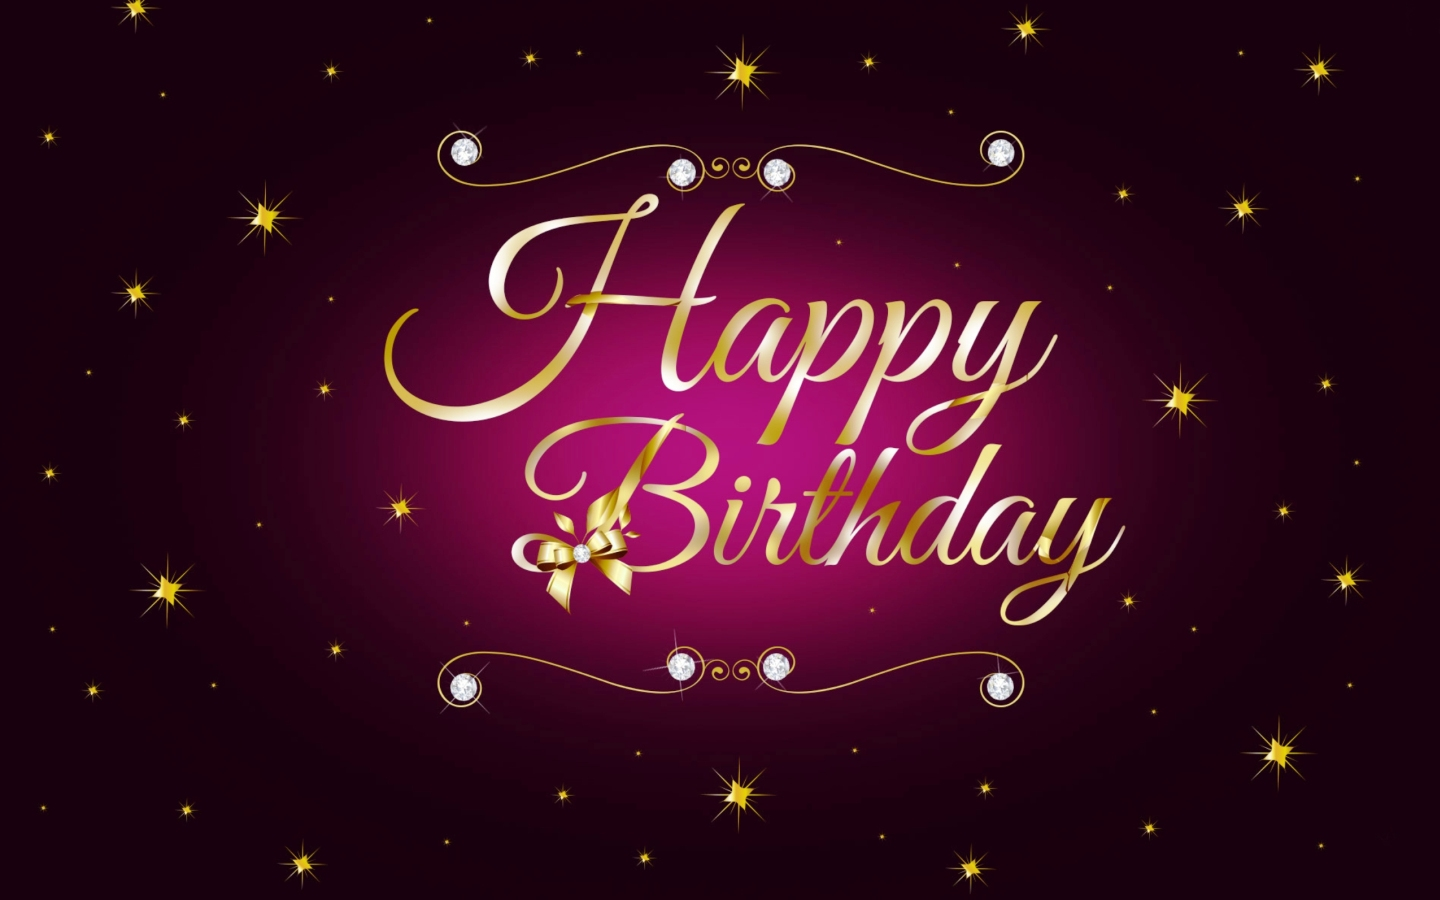 birthday wishes background wallpaper ; happy-birthday-wishes-best-HD-wallpaper